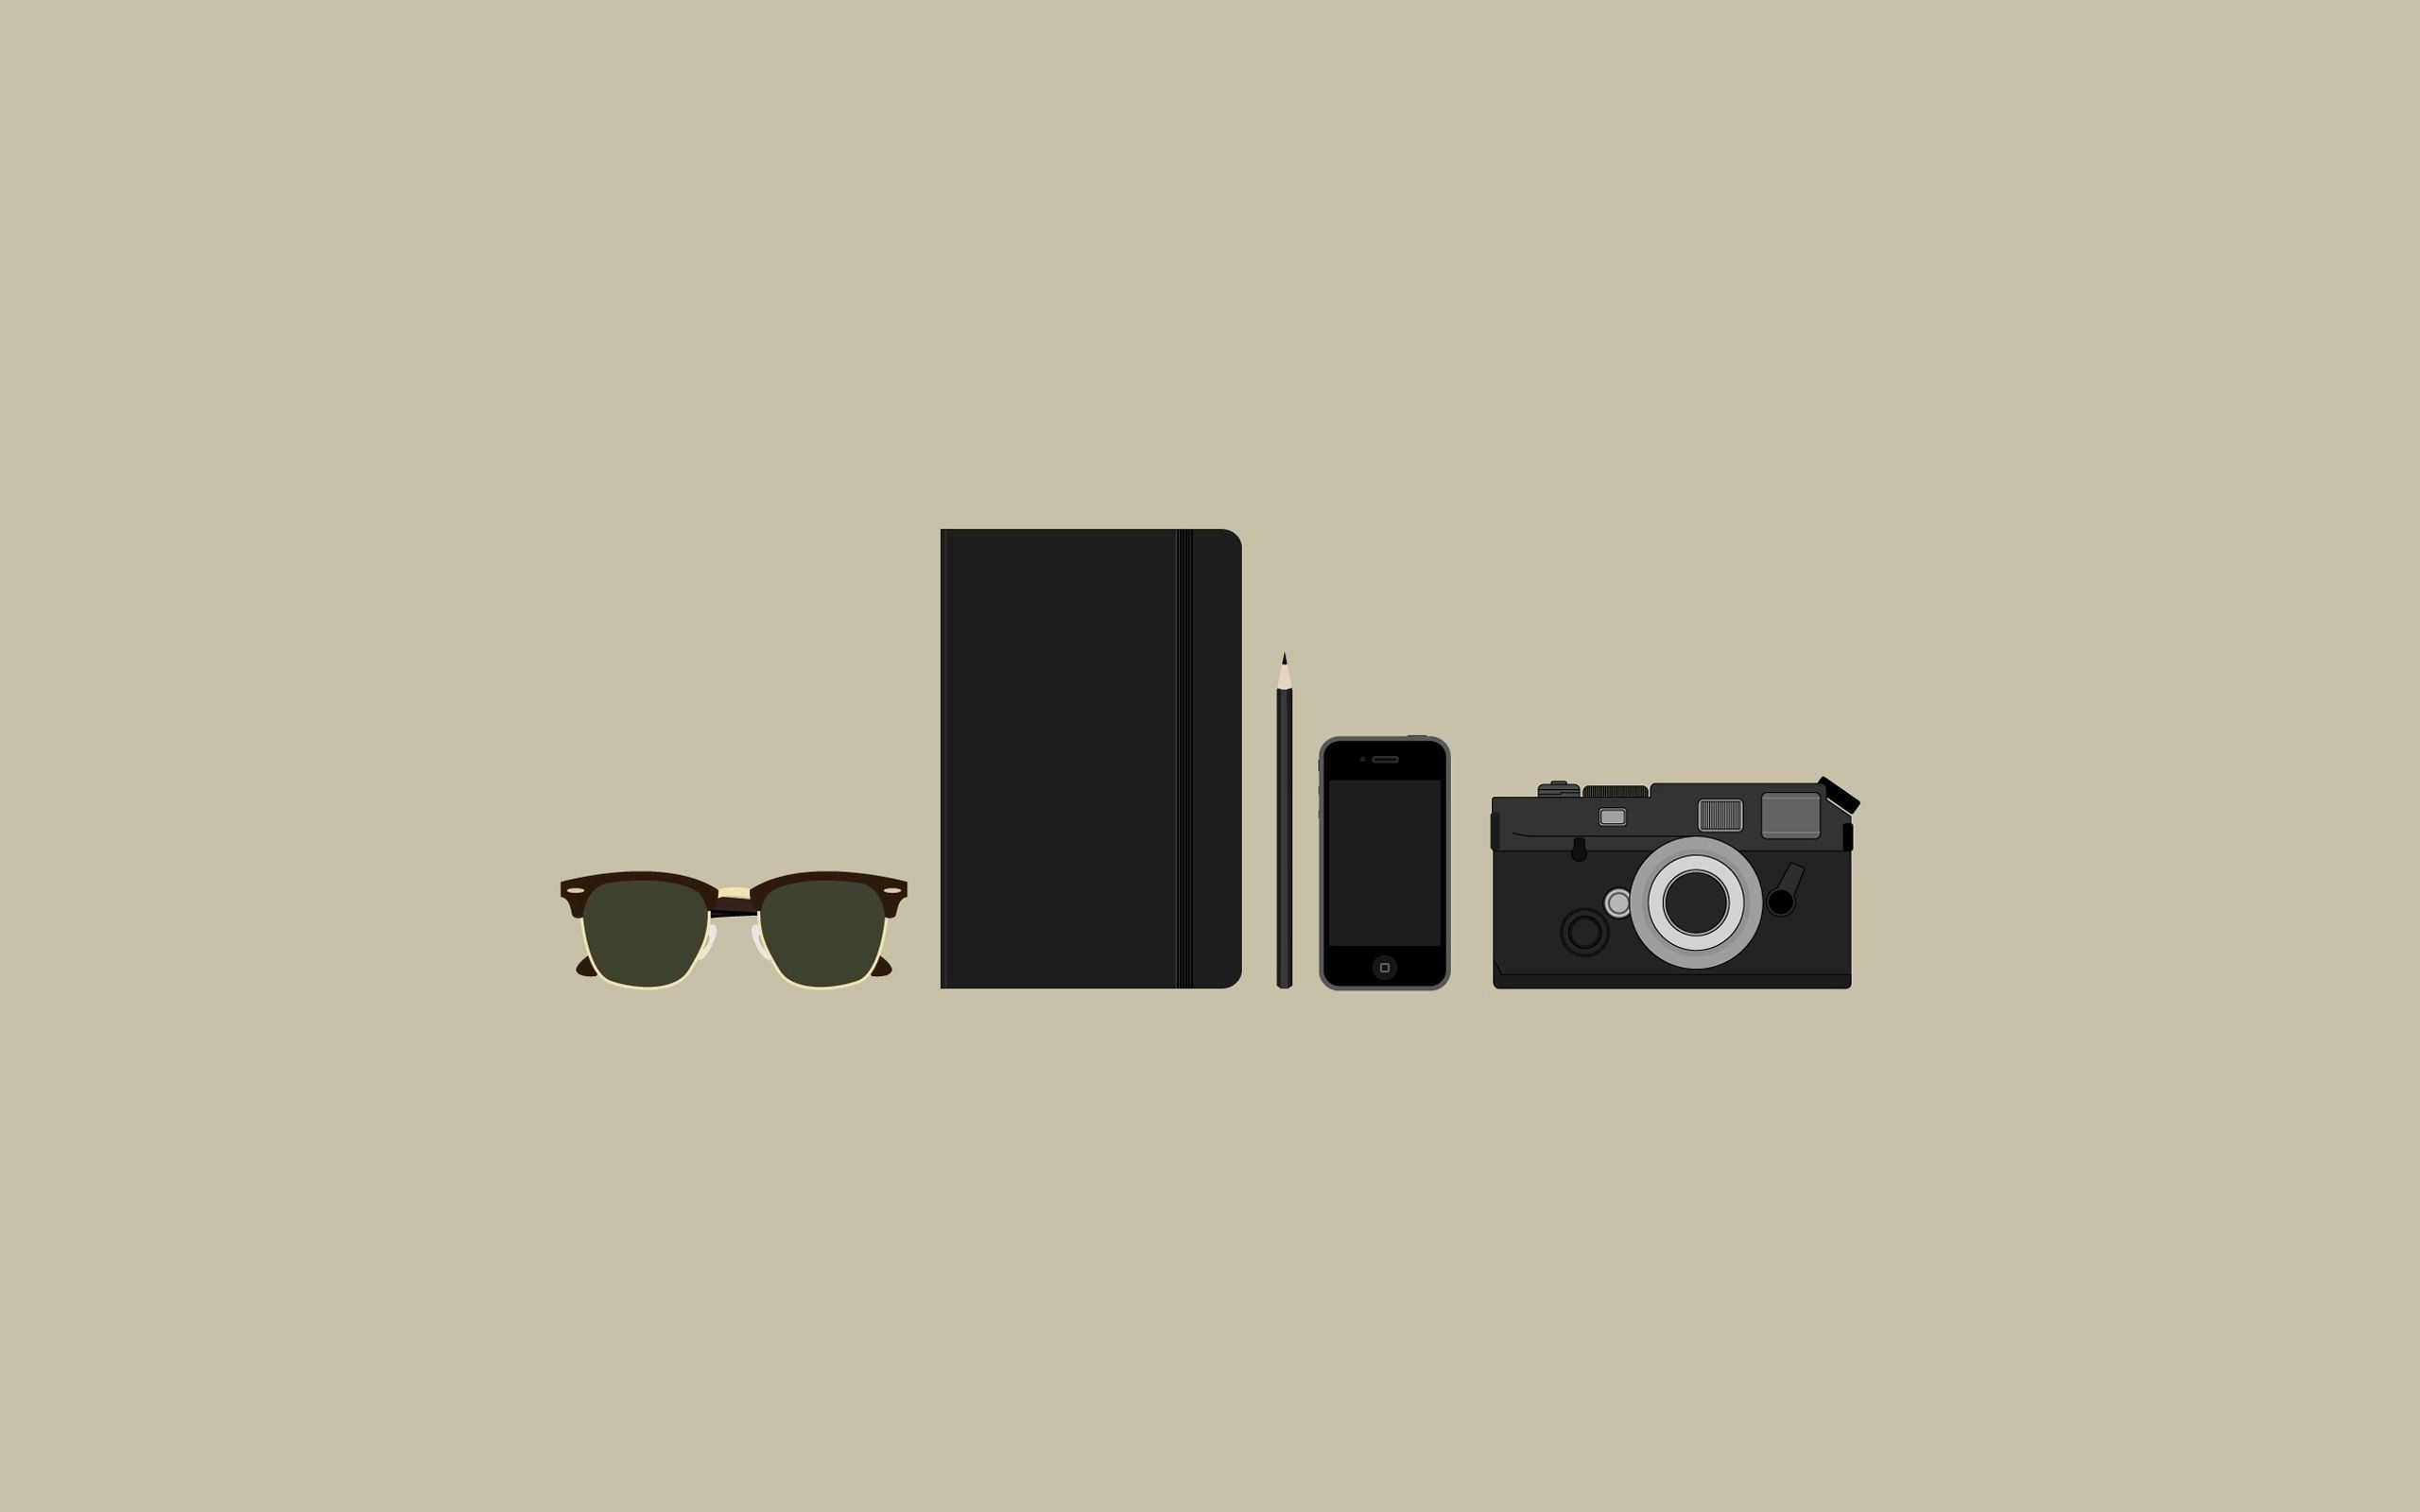 136212 download wallpaper Minimalism, Items, Camera, Glasses, Spectacles, Purse, Telephone screensavers and pictures for free